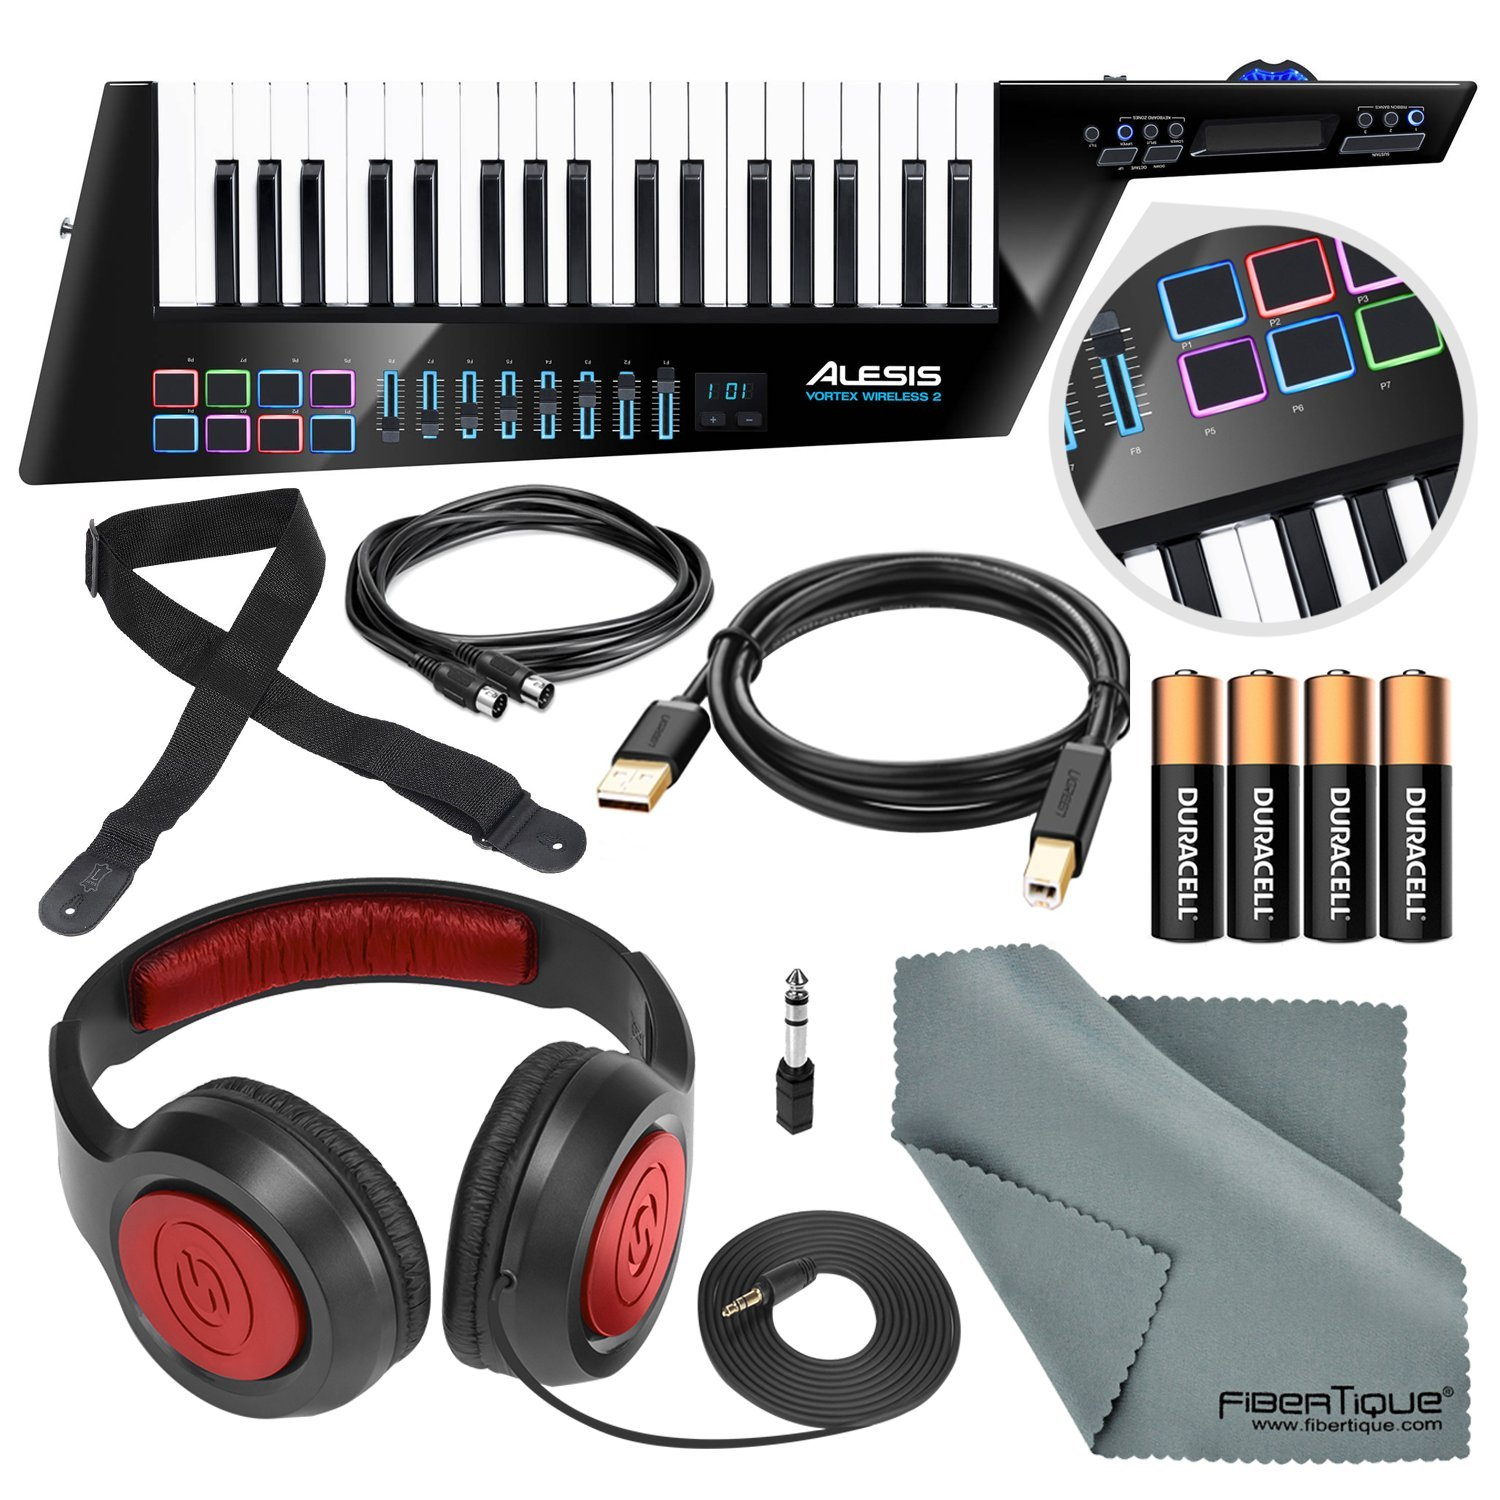 Alesis Vortex Wireless 2 USB/MIDI Keytar Controller with Samson Headphones, Strap, Cables, Batteries, and Microfiber Cloth by Alesis